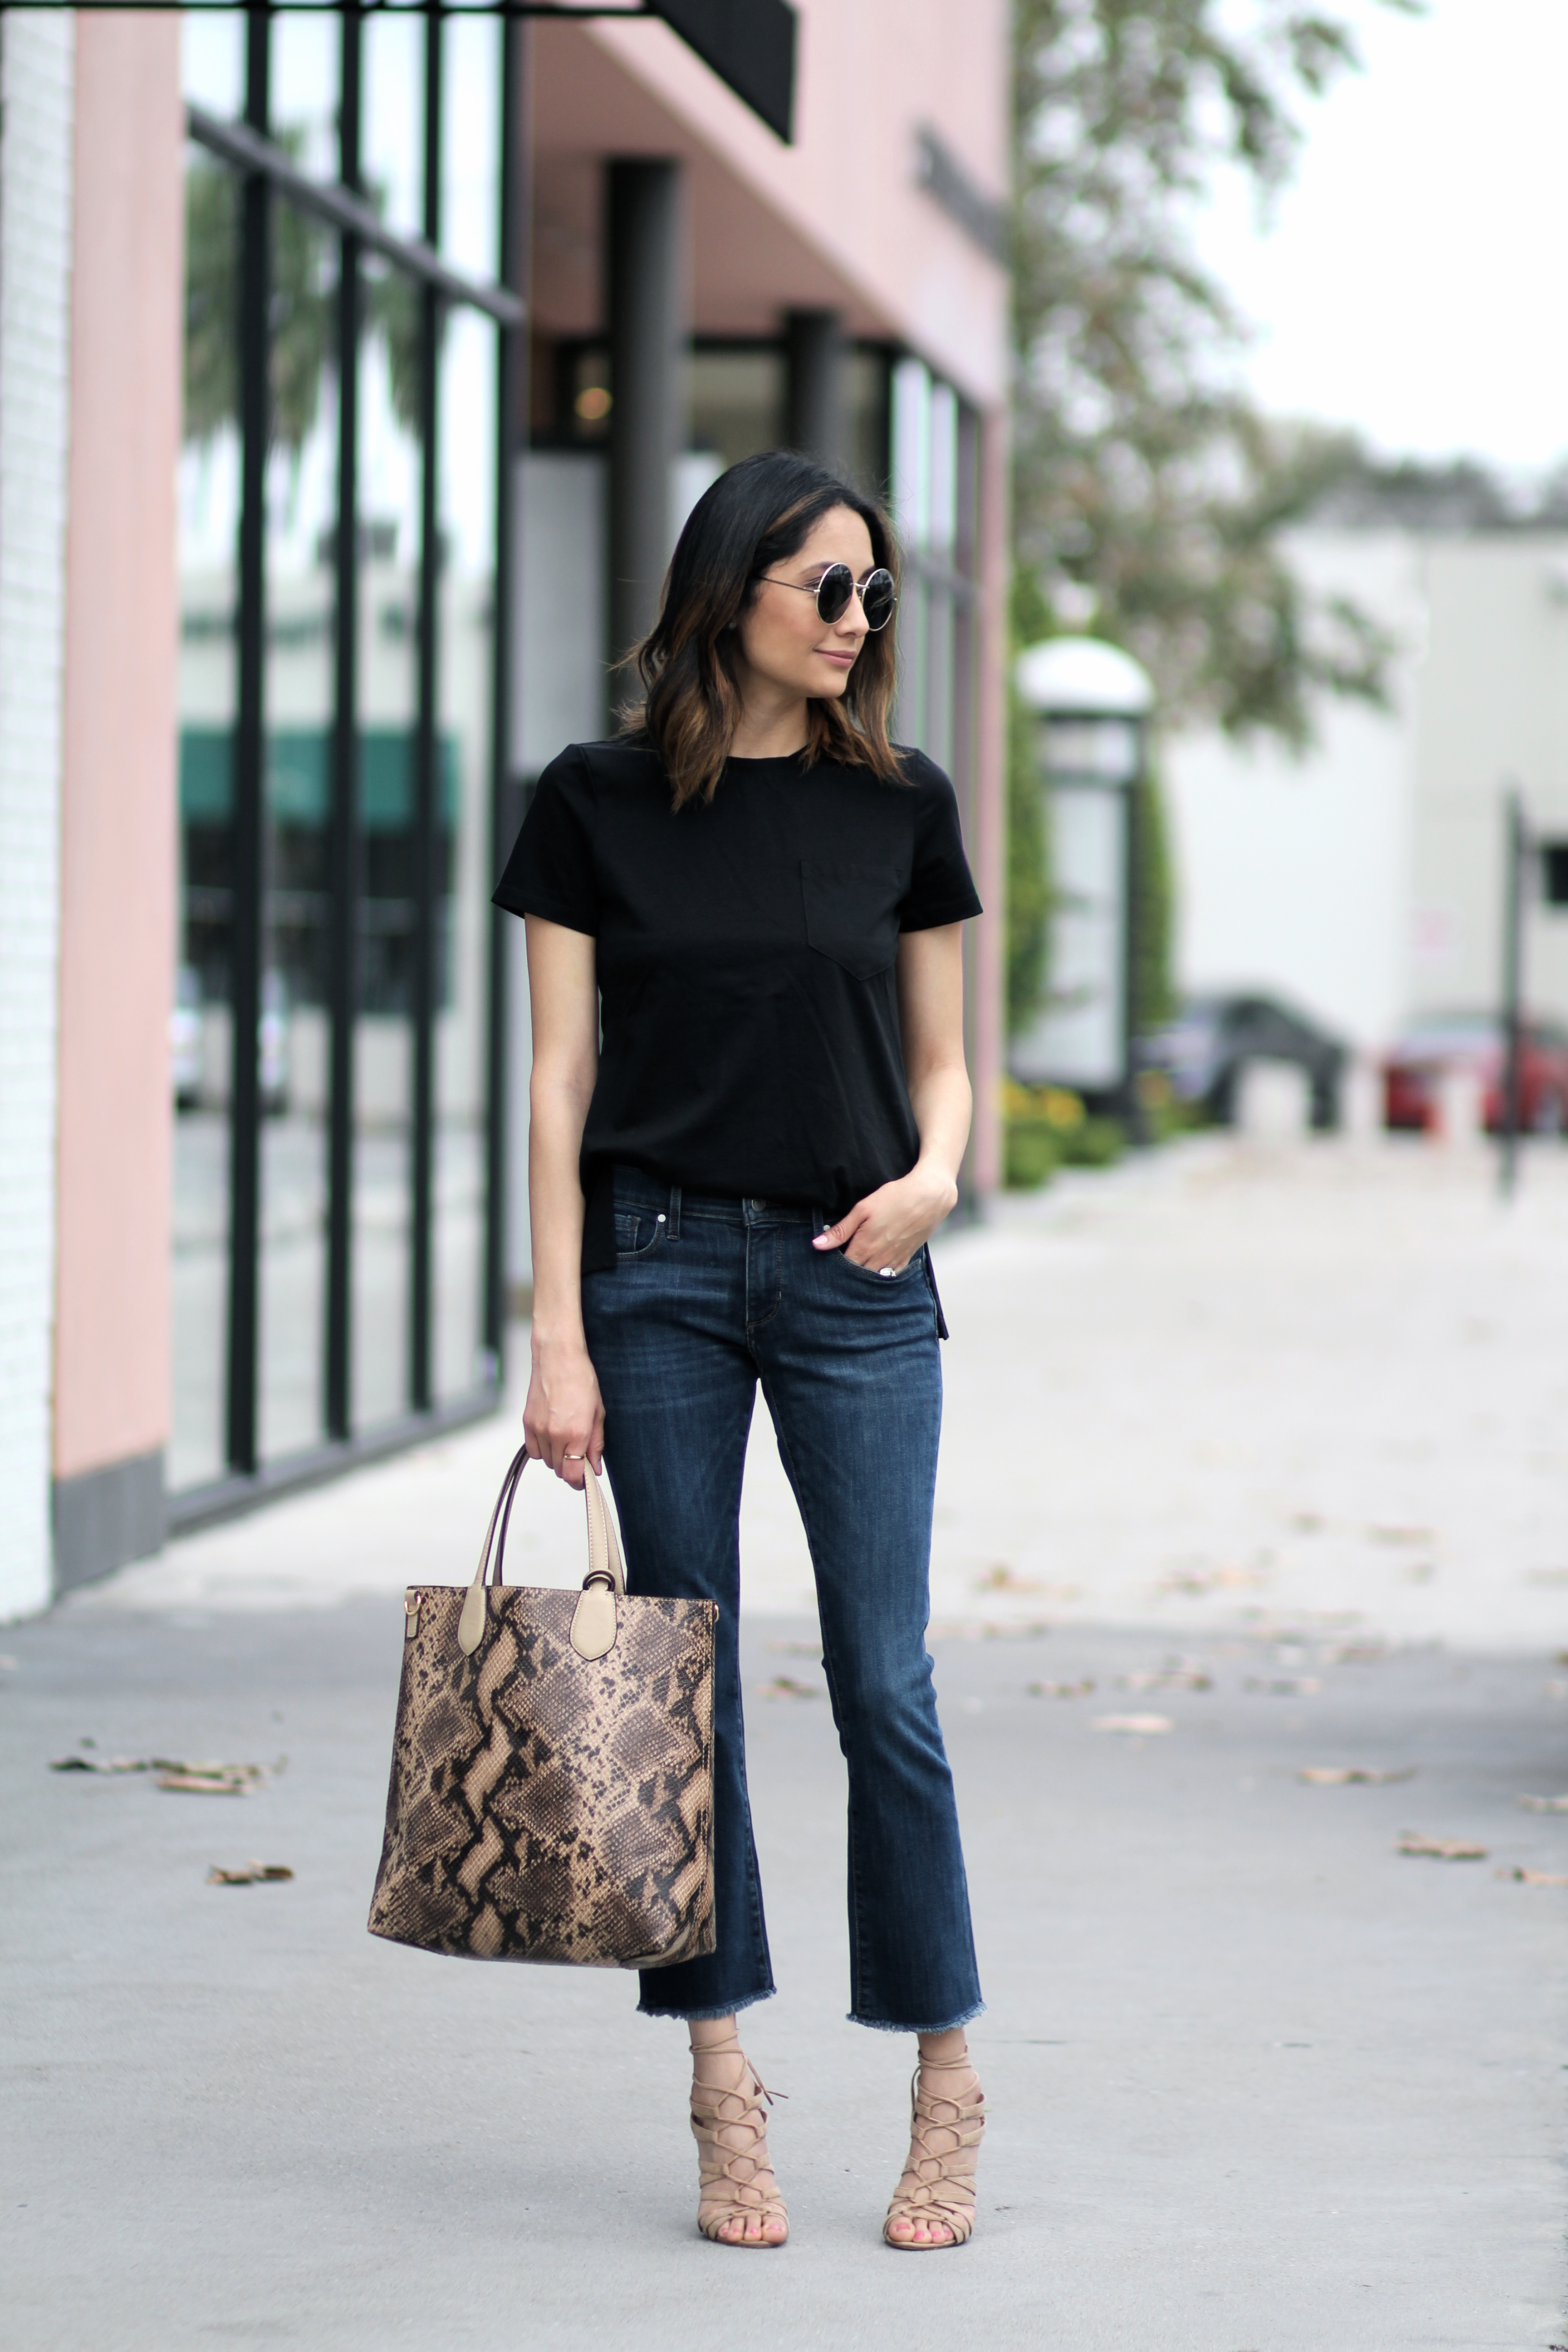 Lifestyle blogger Lilly Beltran of Daily Craving in a casual look with a black tee and crop denim